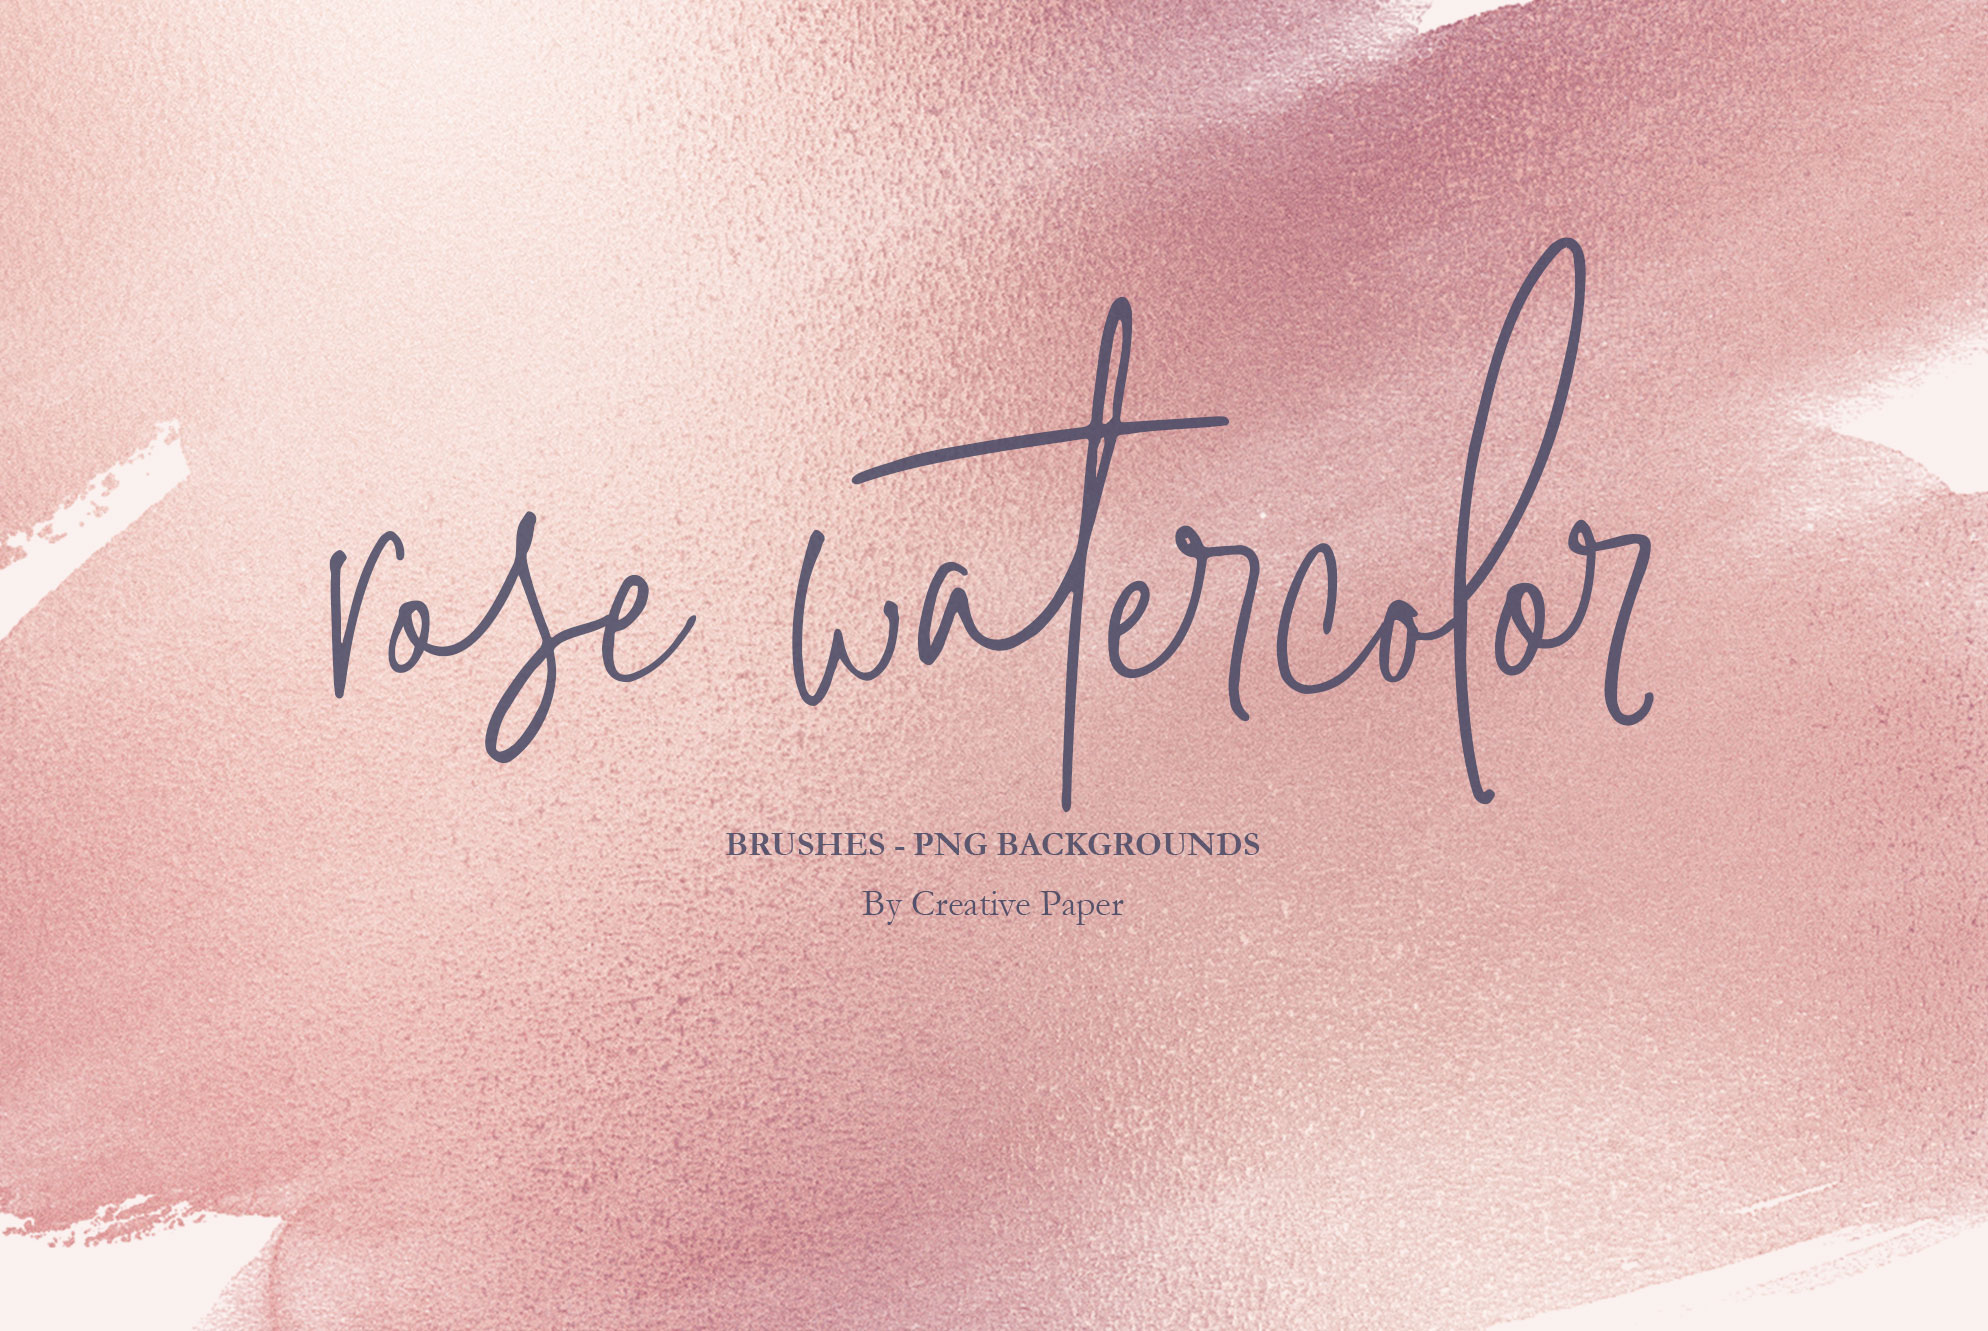 Rose Gold Watercolor Brushes PNG Backgrounds example image 1